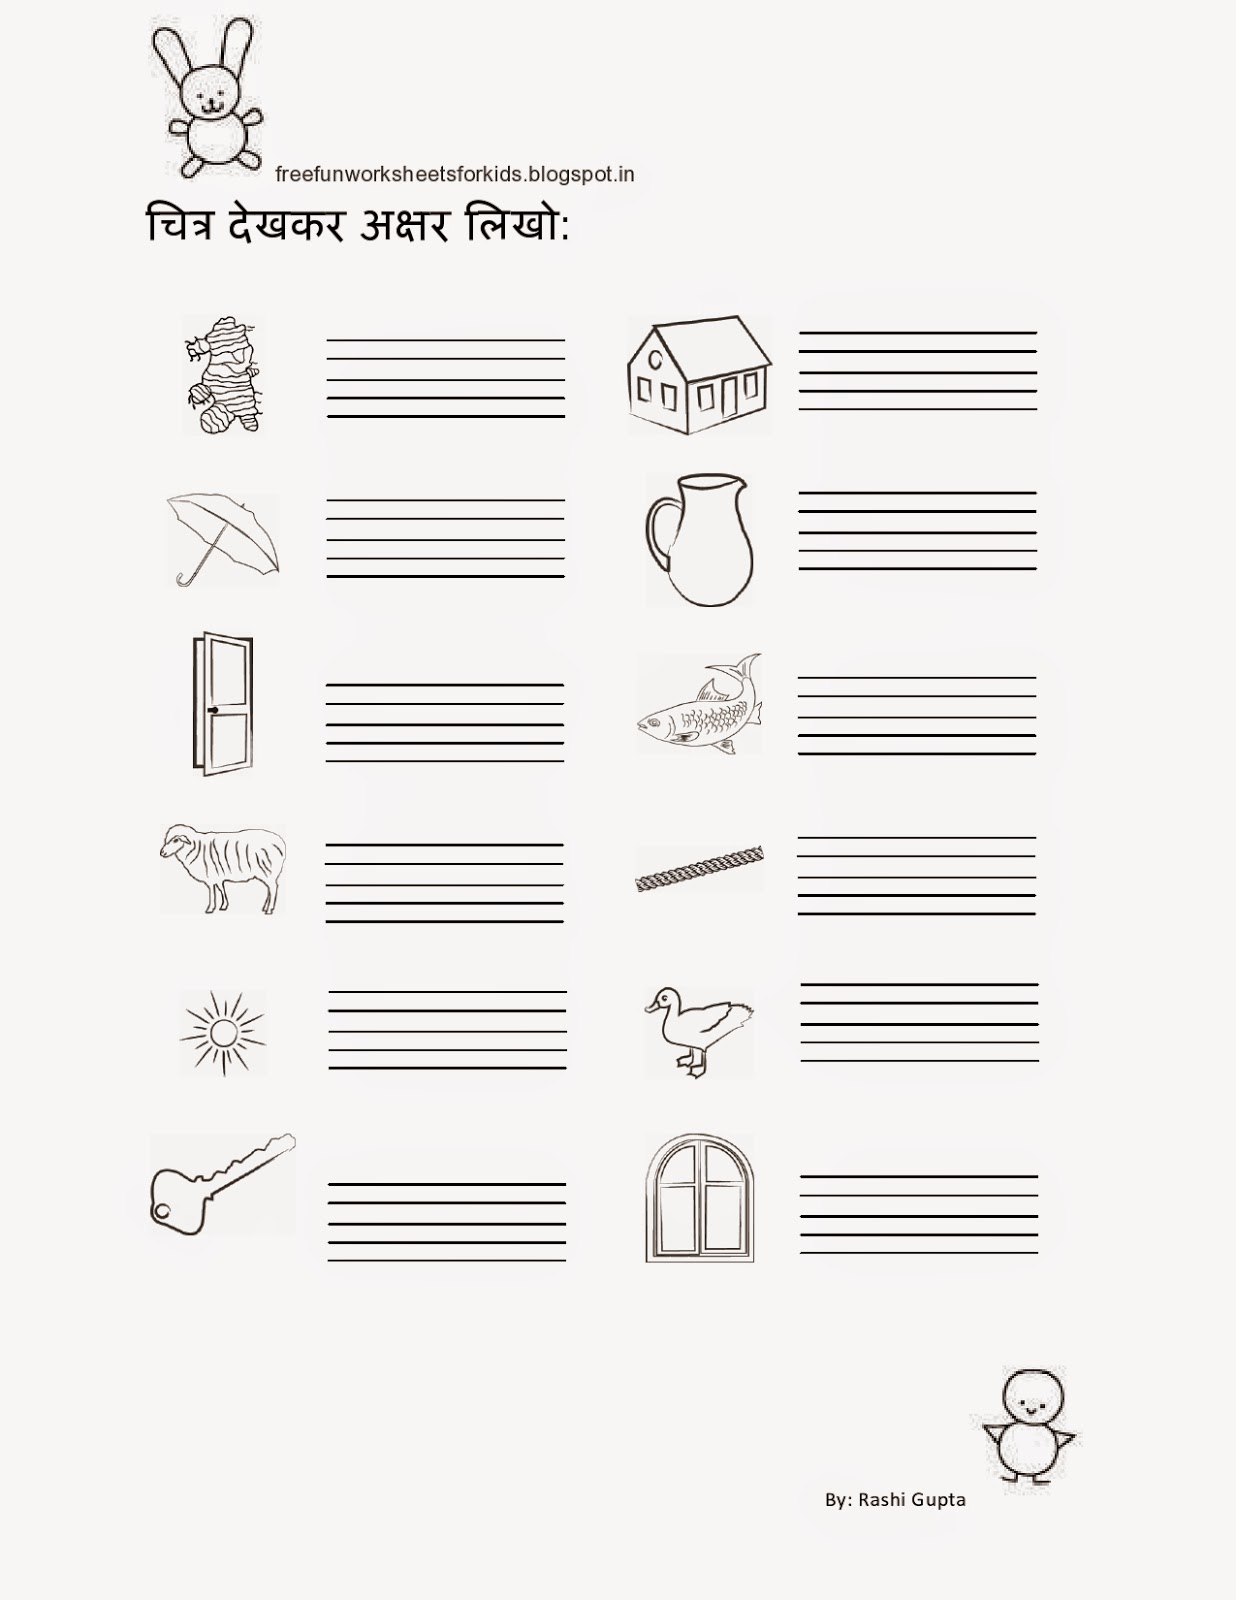 Free Fun Worksheets For Kids: Free Printable Fun Hindi Worksheets for ...